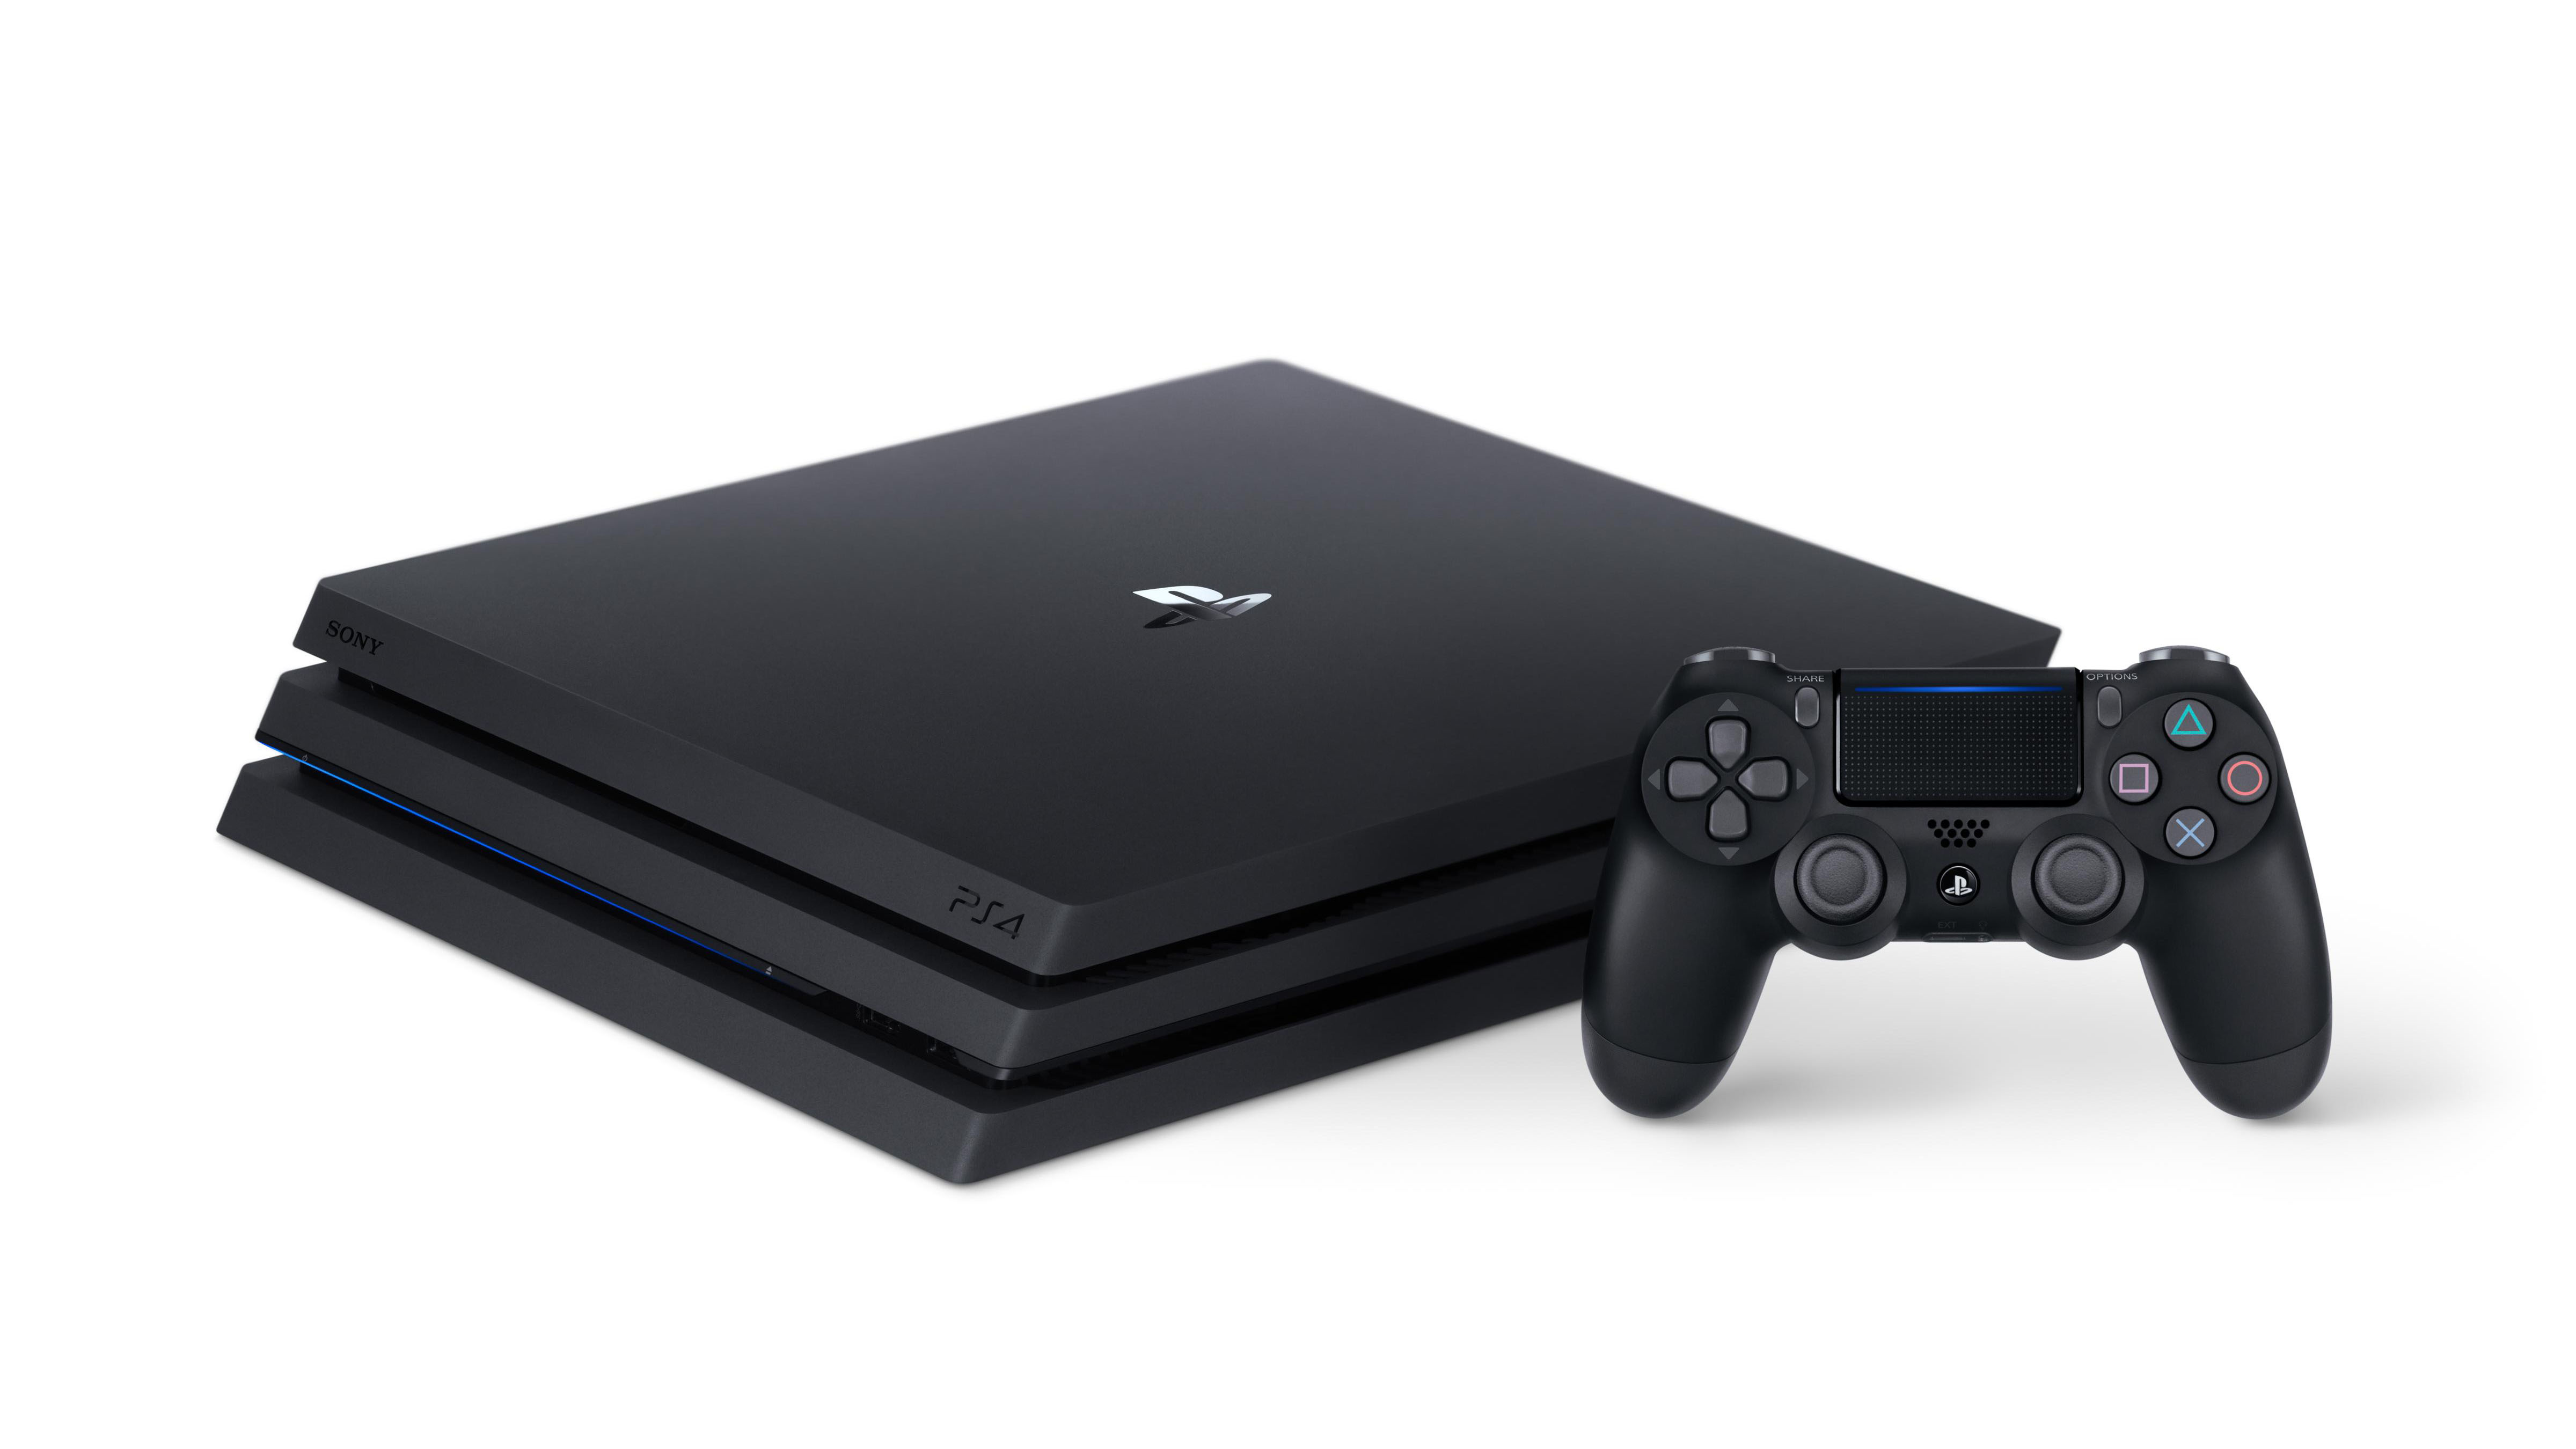 Ps4 game download rest mode   PS4  2019-08-03